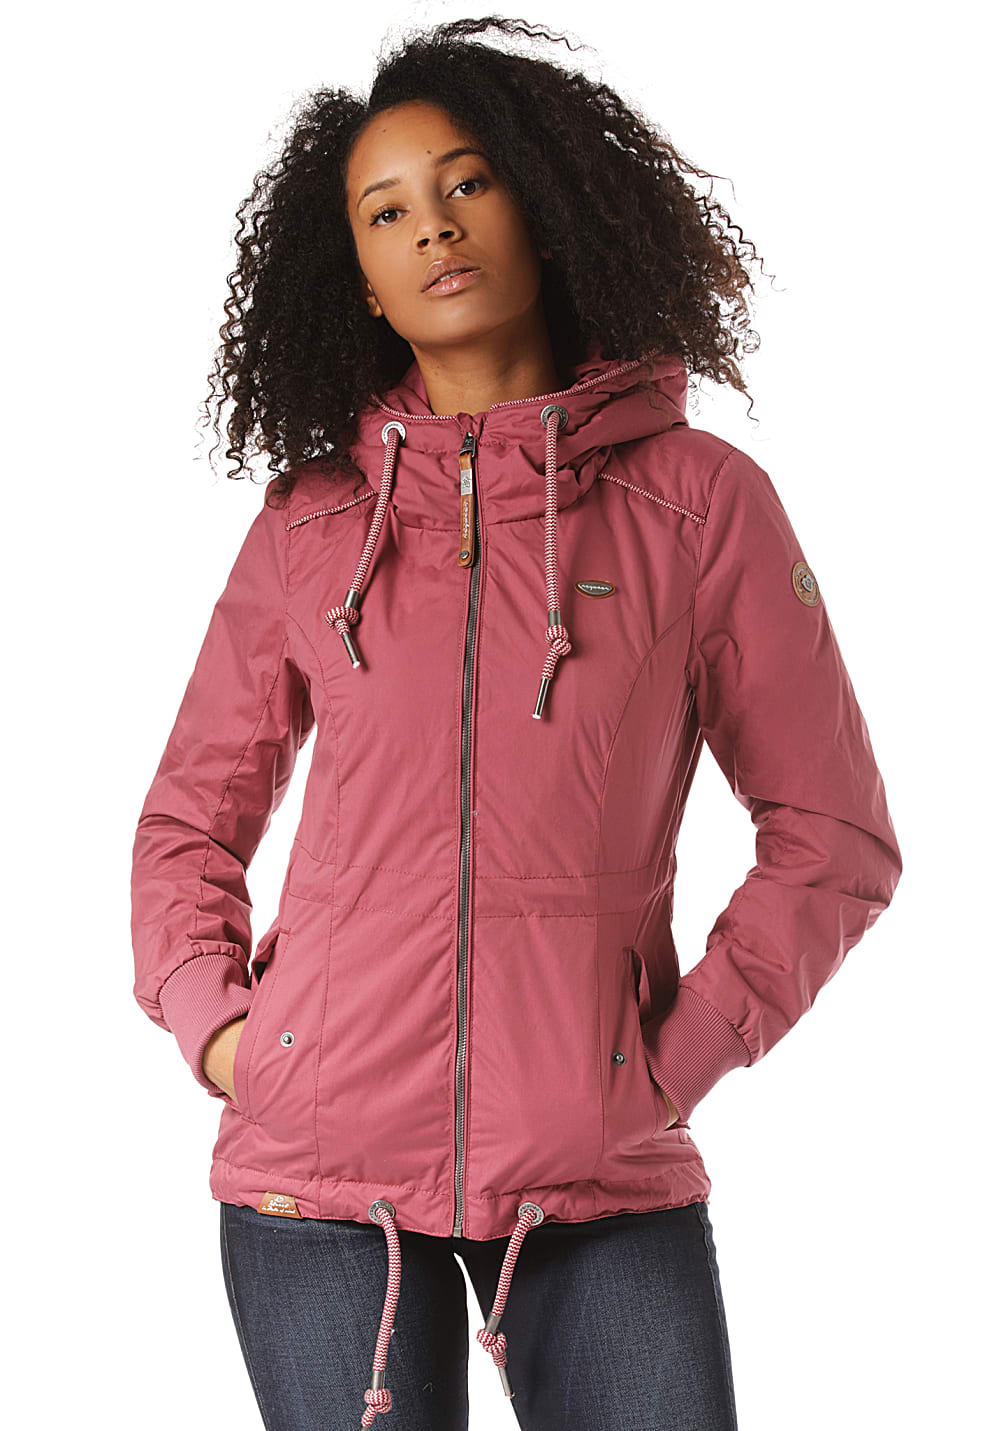 Jacken - ragwear Danka Jacke für Damen Rot  - Onlineshop Planet Sports